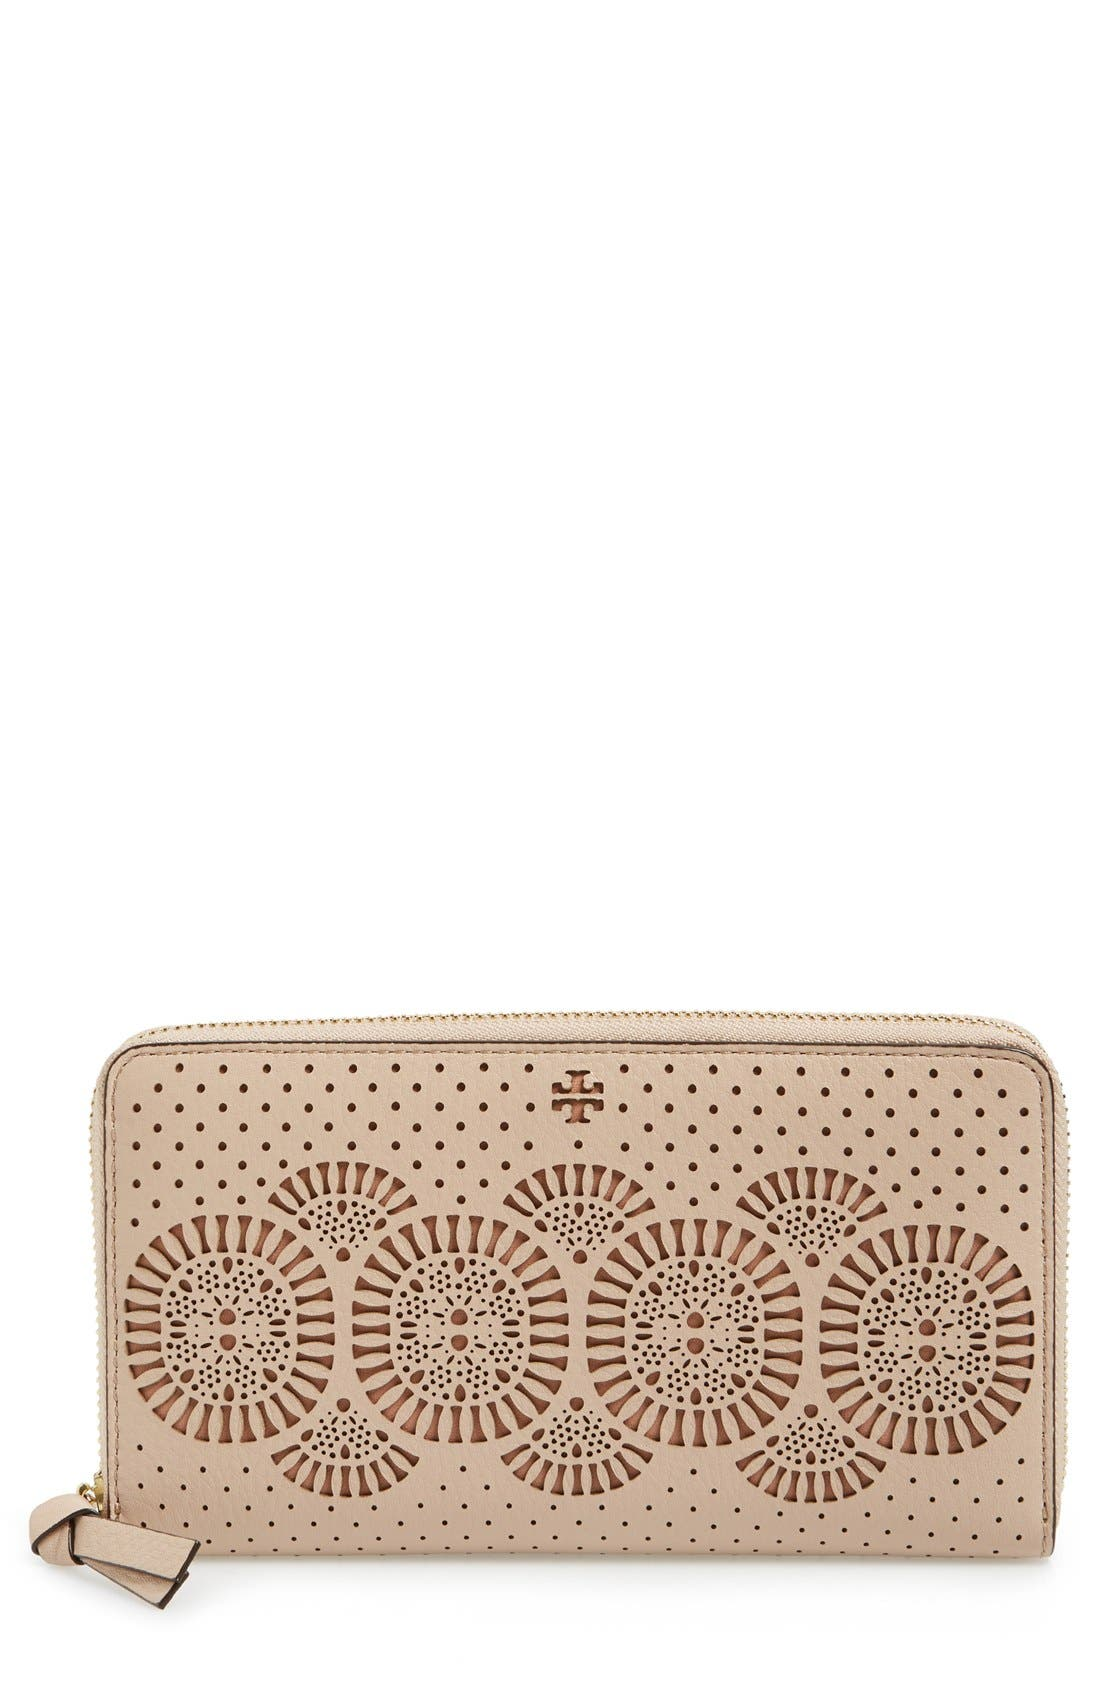 Alternate Image 1 Selected - Tory Burch 'Zoey' Zip Continental Wallet